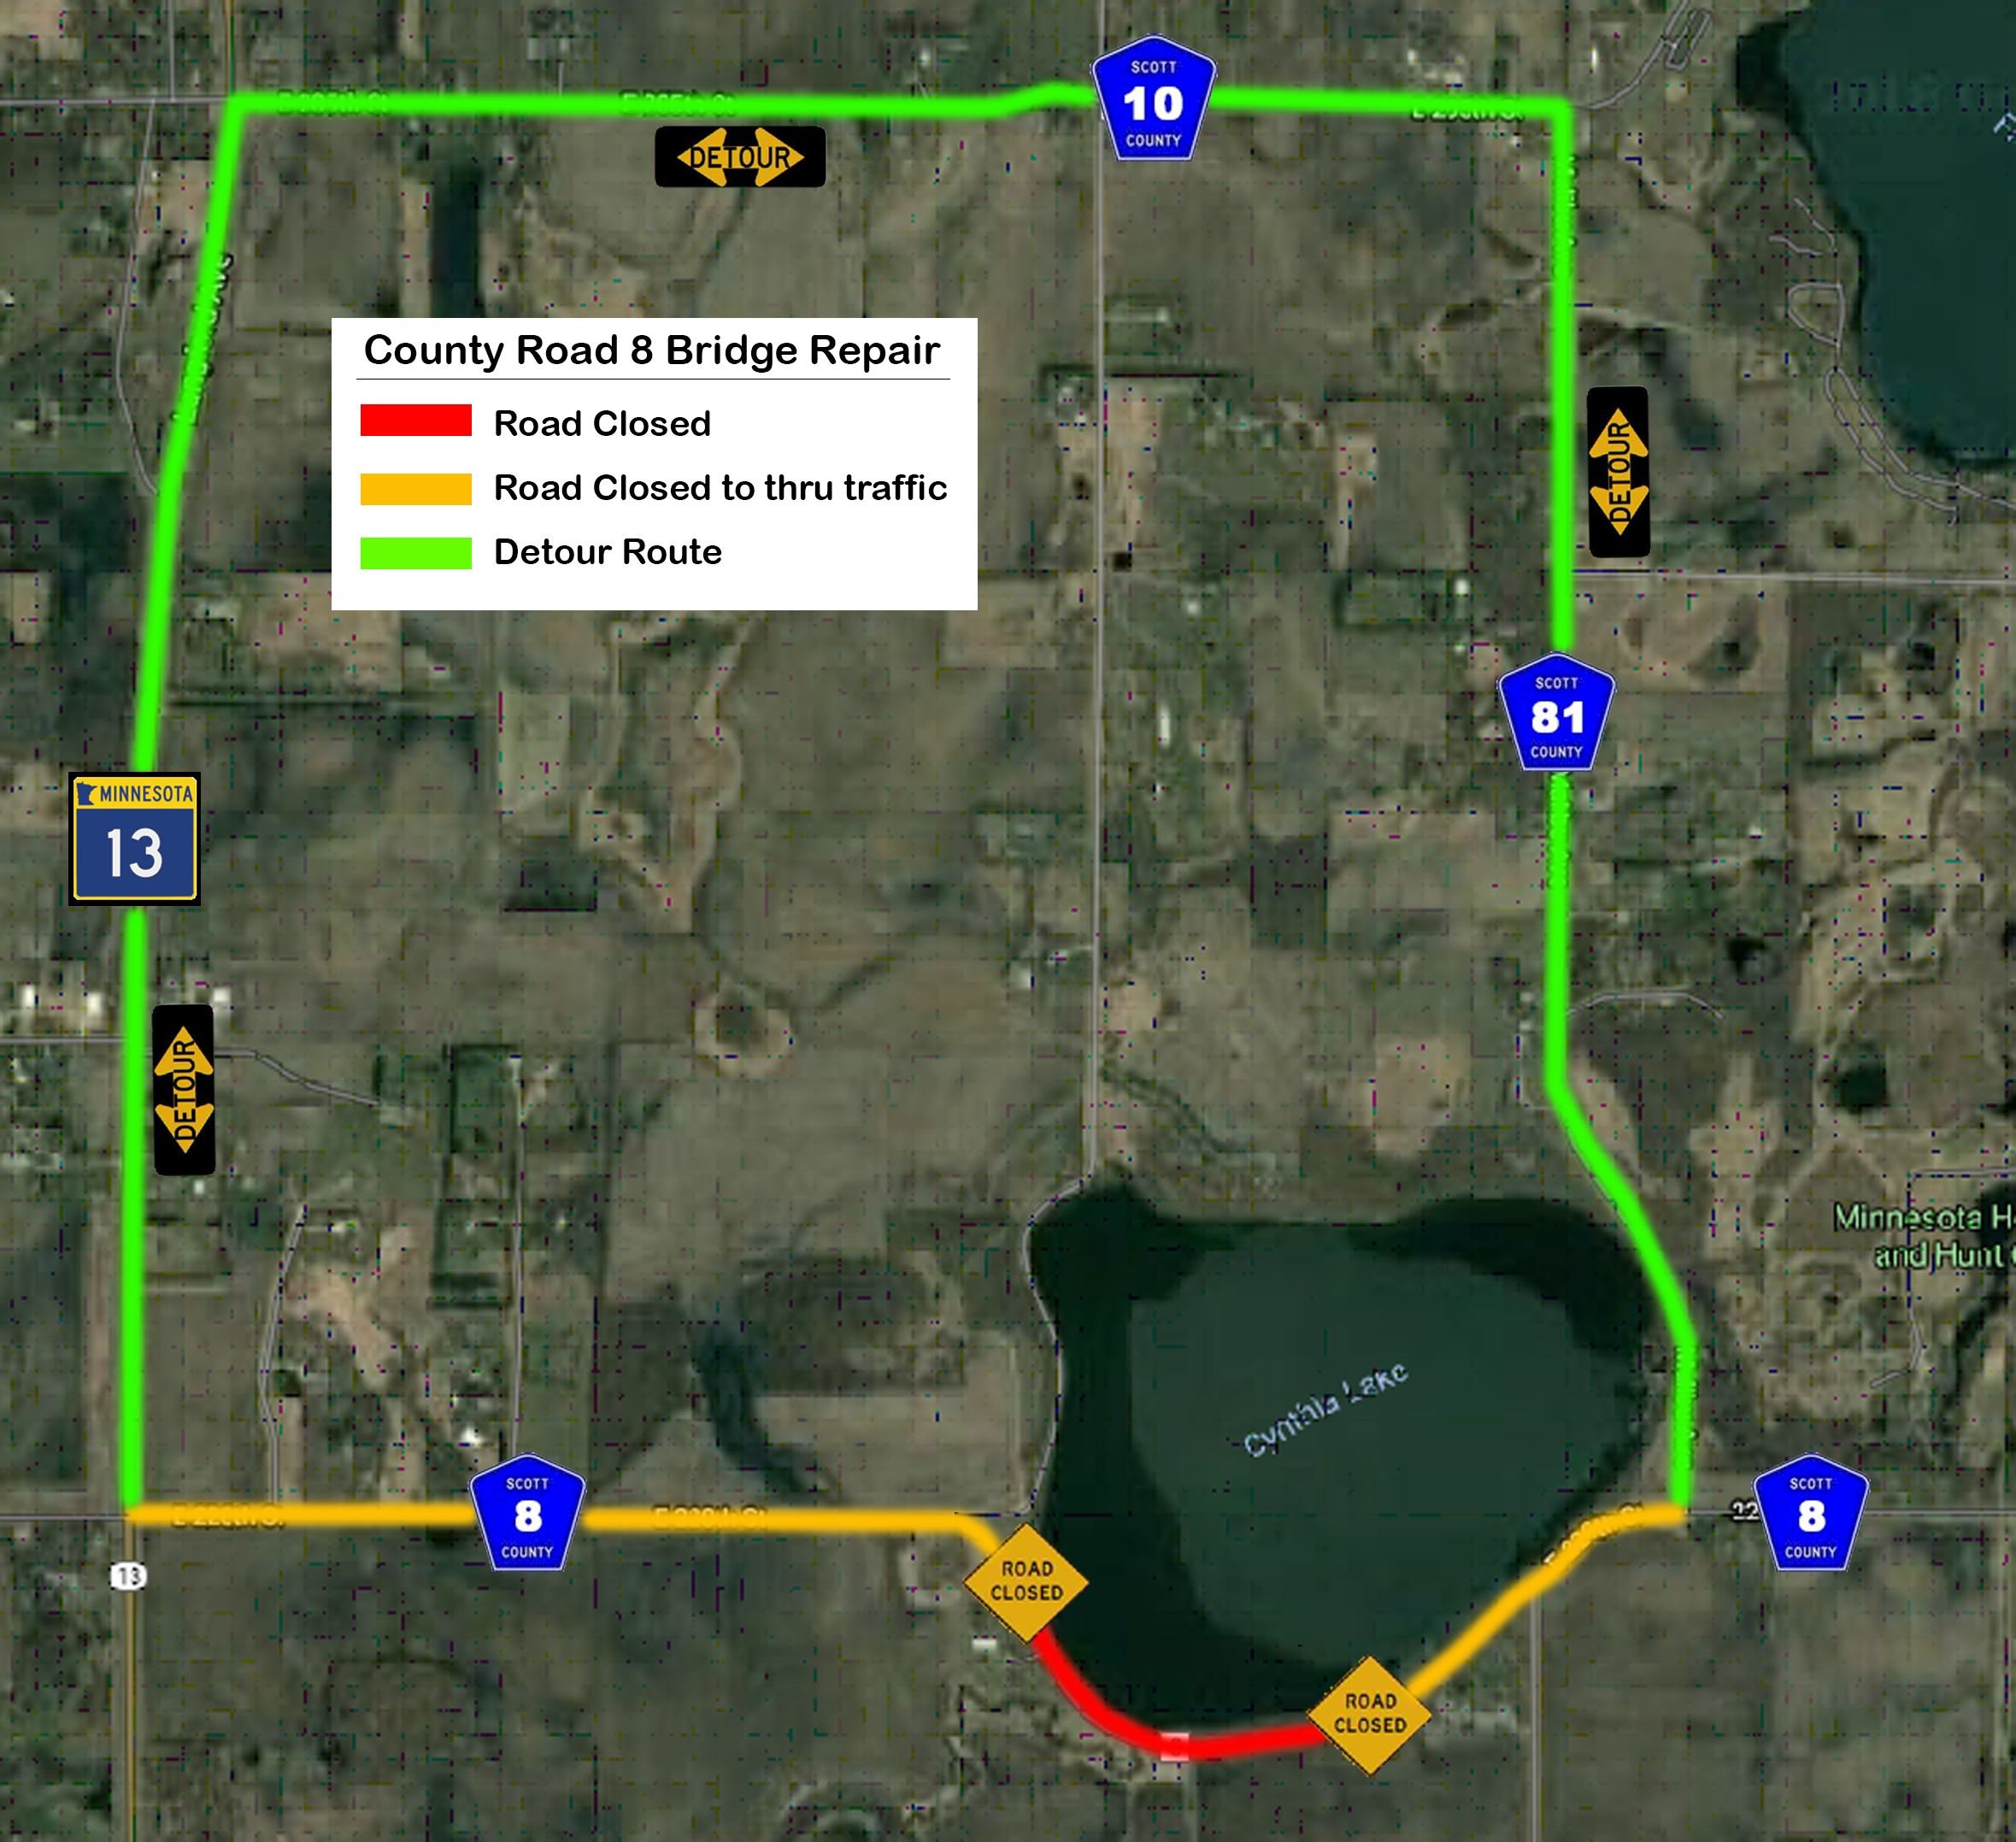 County Road 8 Bridge Repair Detour Map (2)